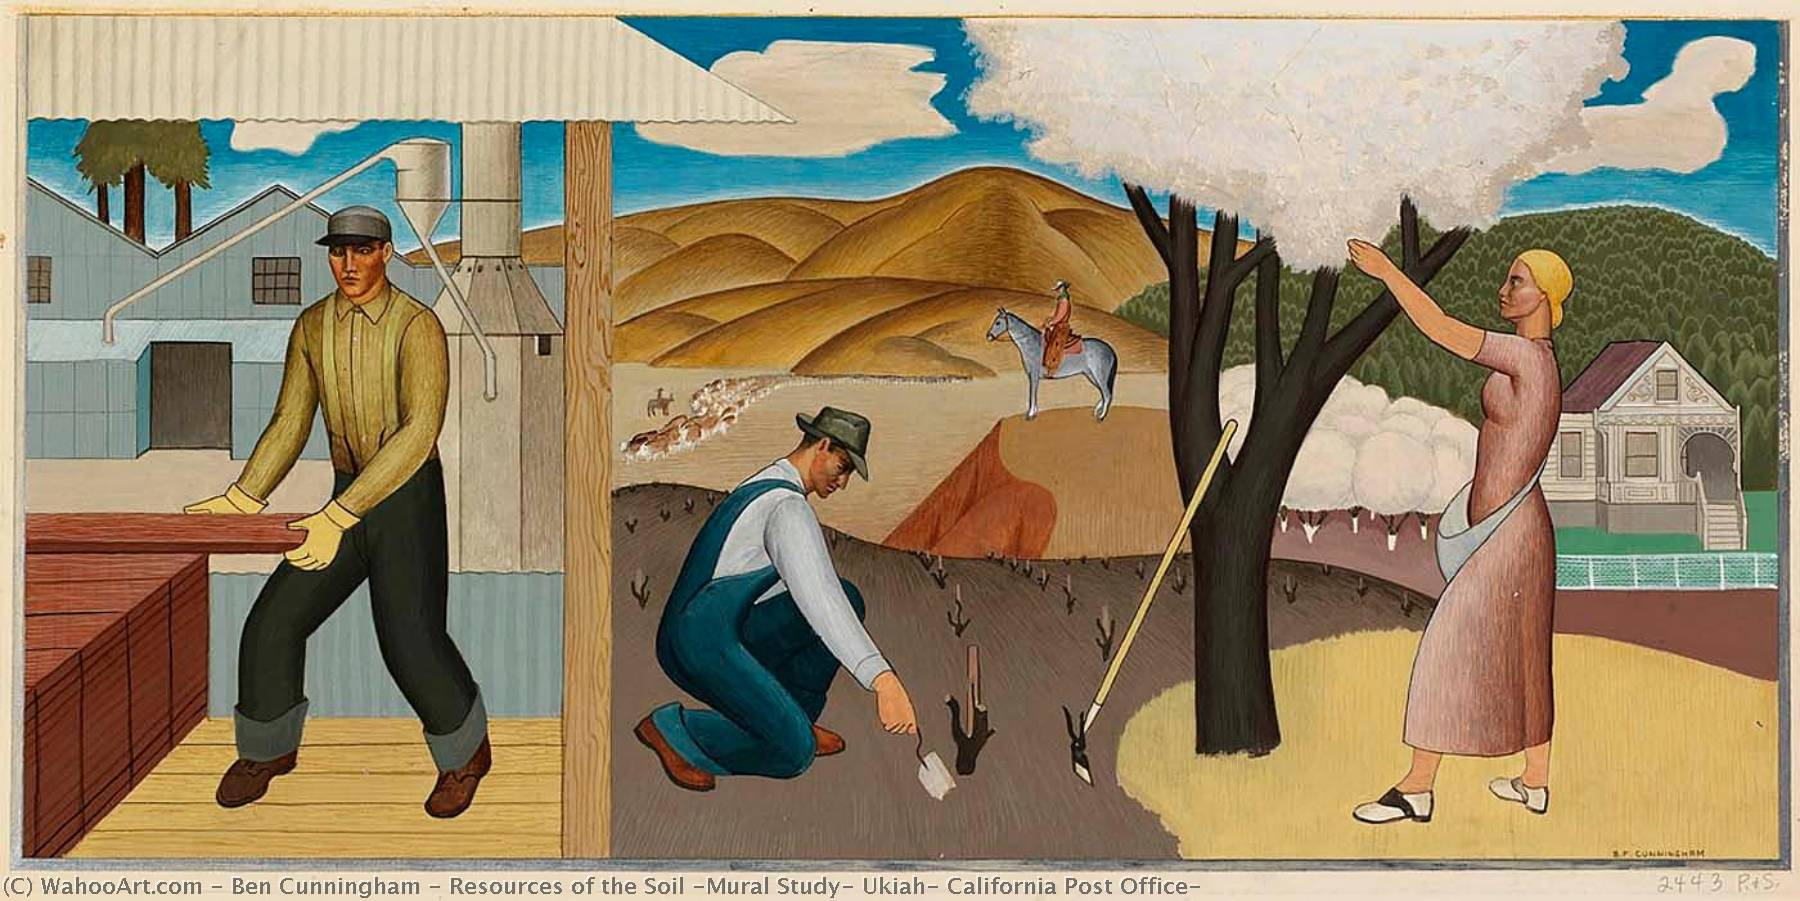 Resources of the Soil (Mural Study, Ukiah, California Post Office), 1938 by Ben Cunningham (1883-1976, United States) | Famous Paintings Reproductions | WahooArt.com